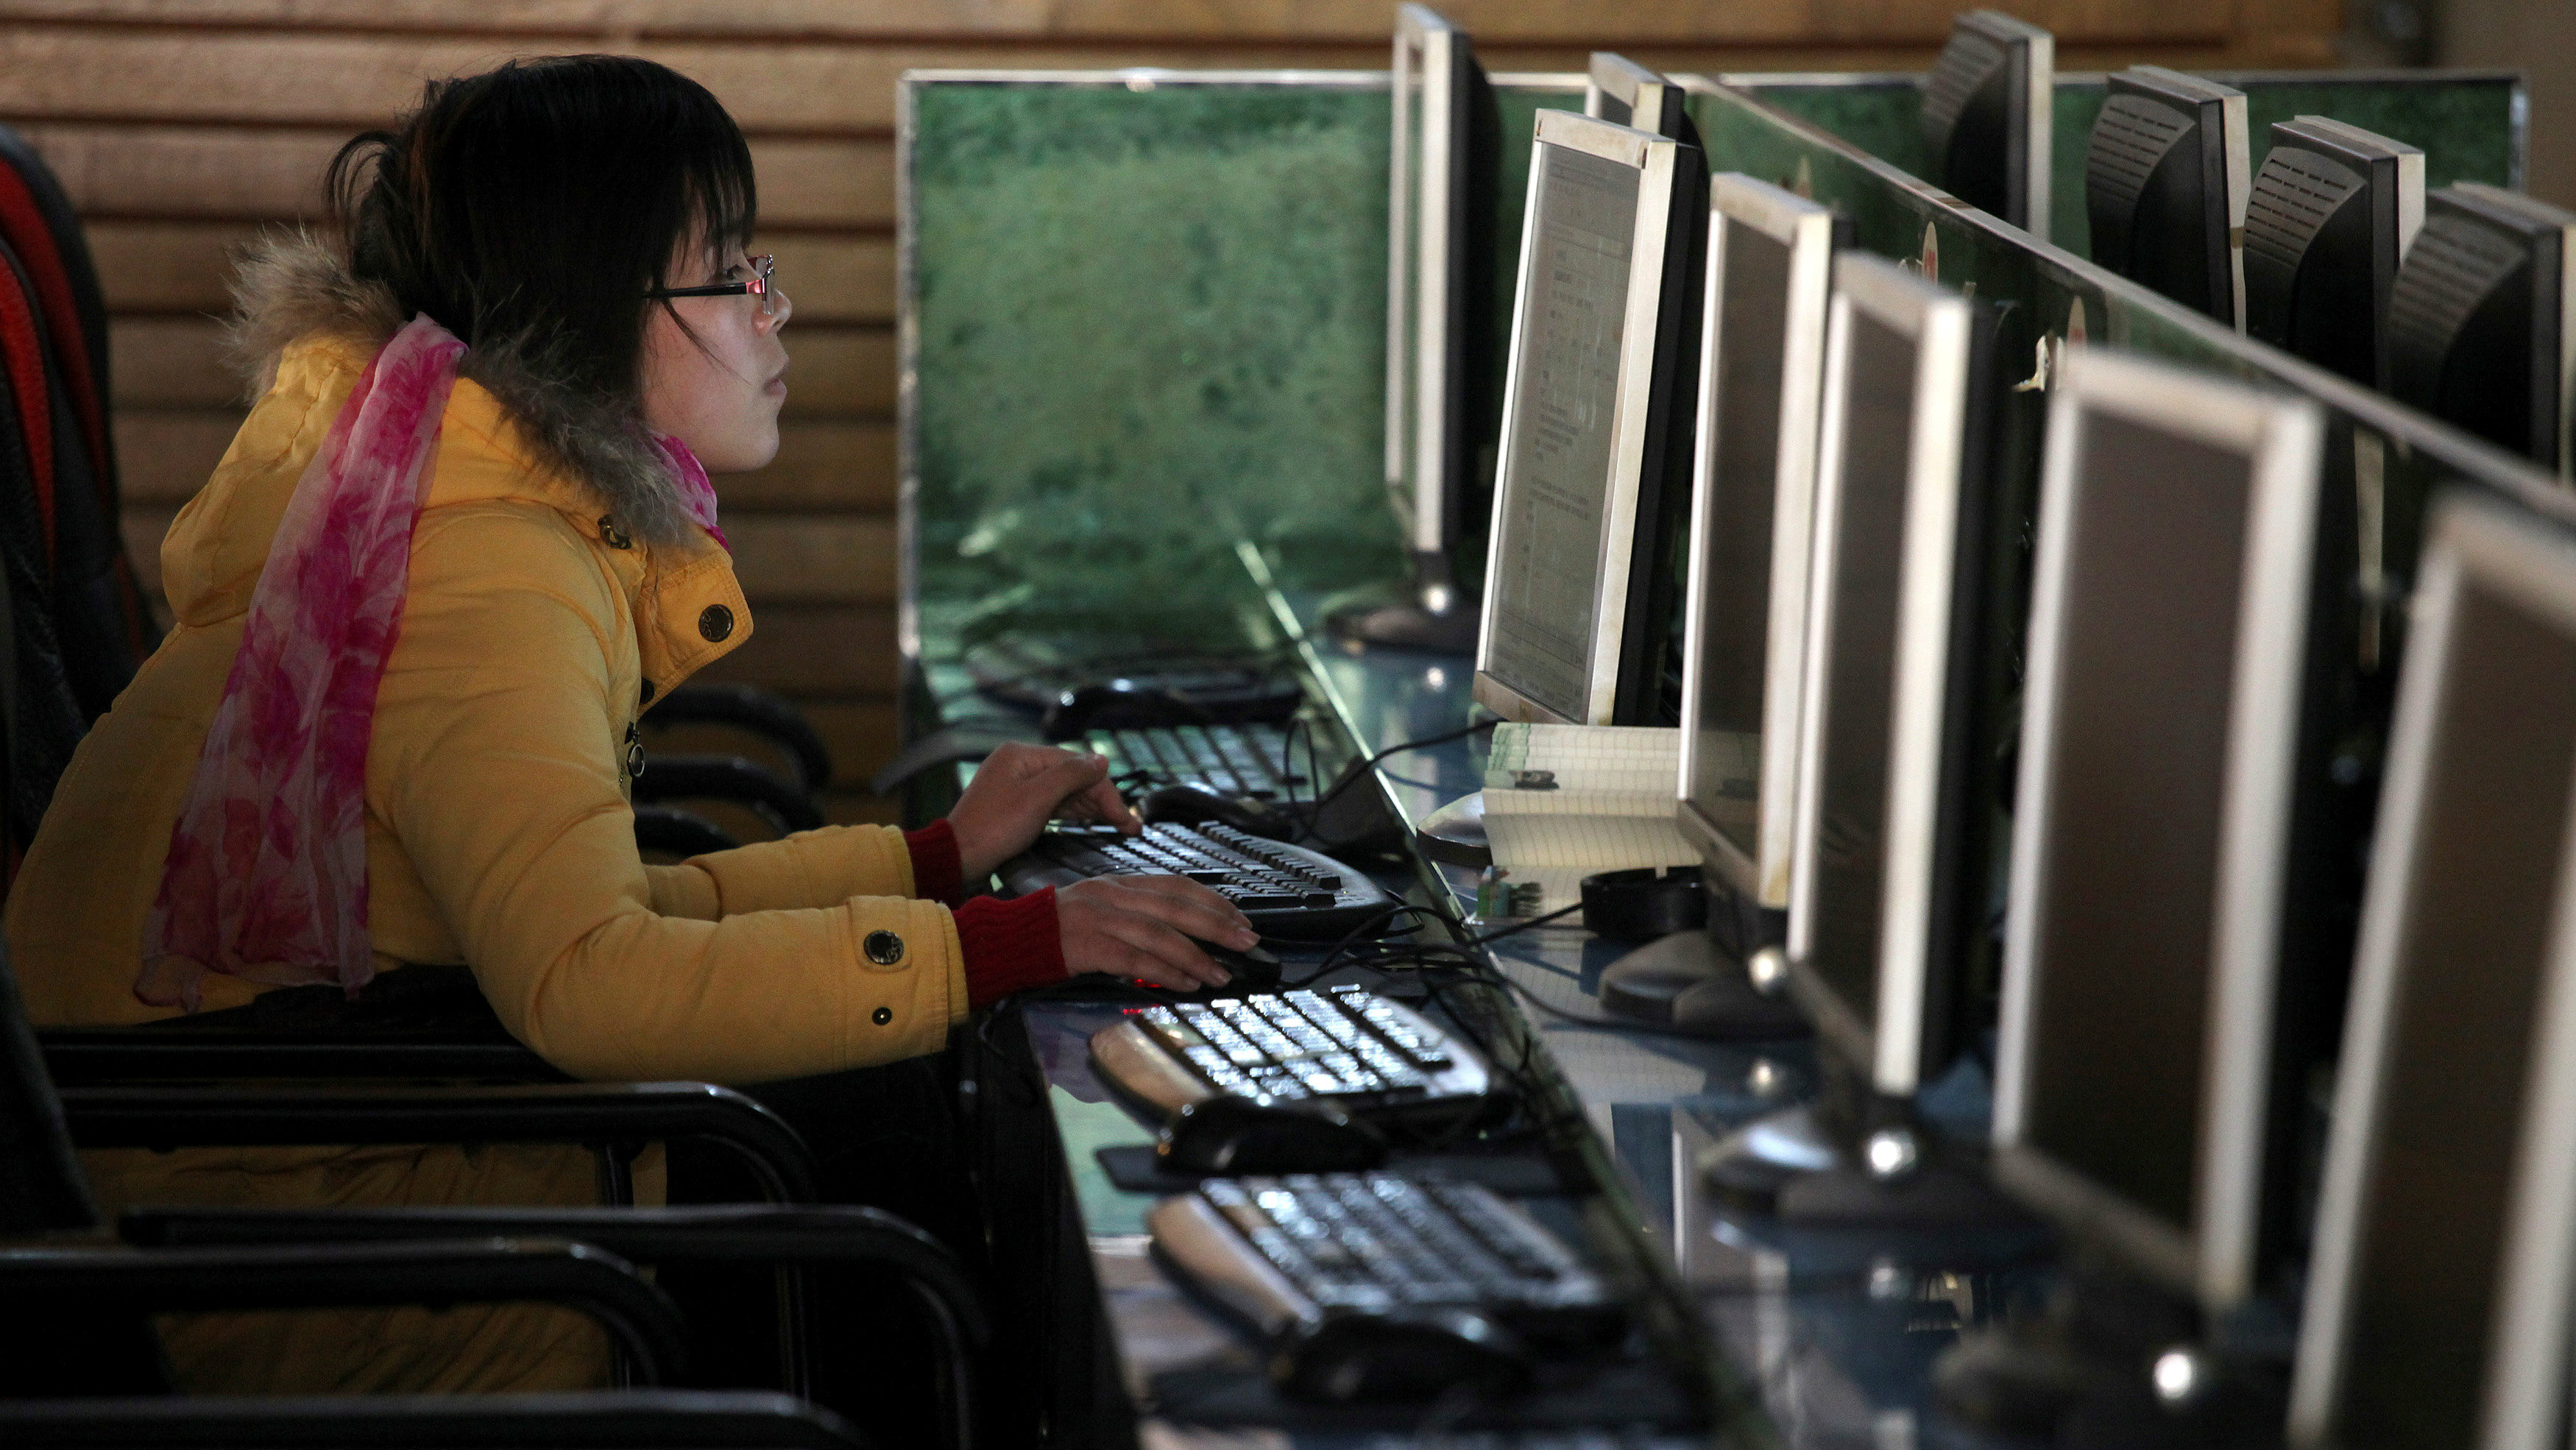 A woman uses a computer in an internet cafe at the centre of Shanghai, China January 13, 2010.